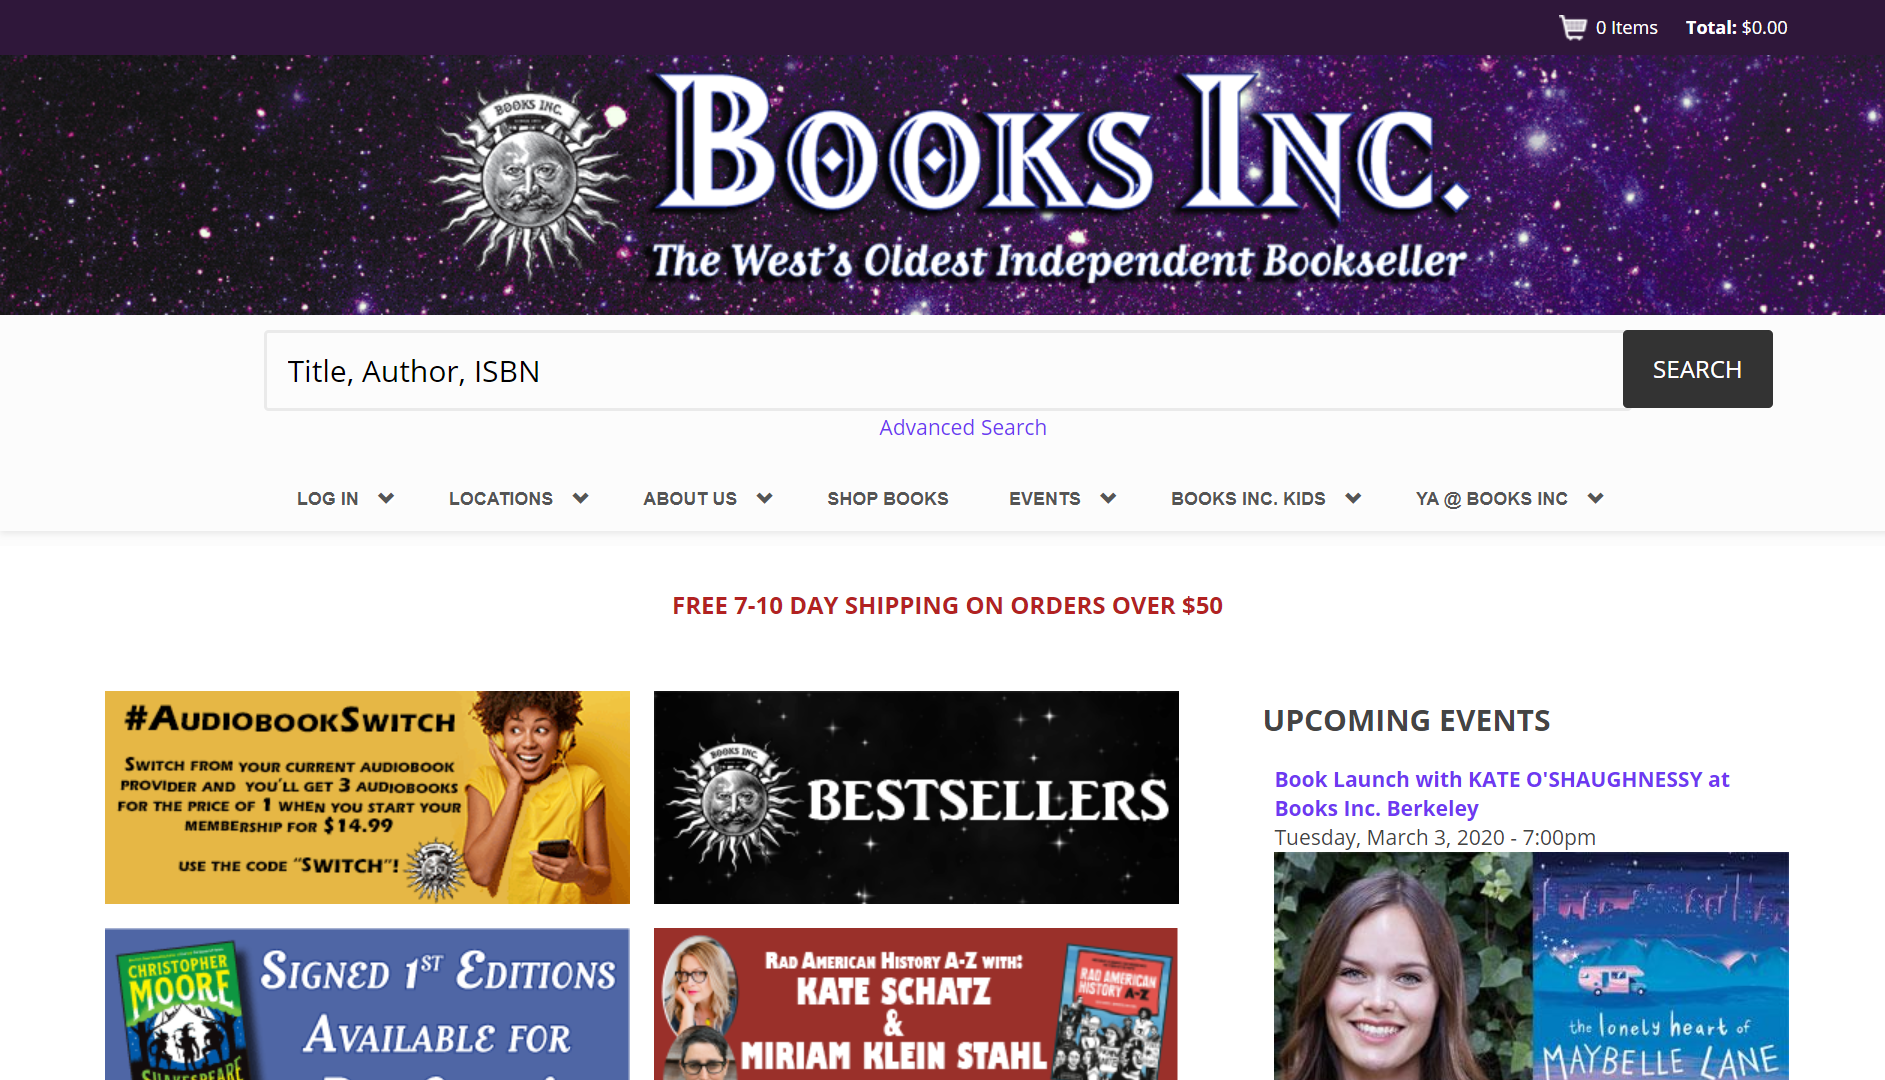 Books Inc. IndieCommerce Home Page